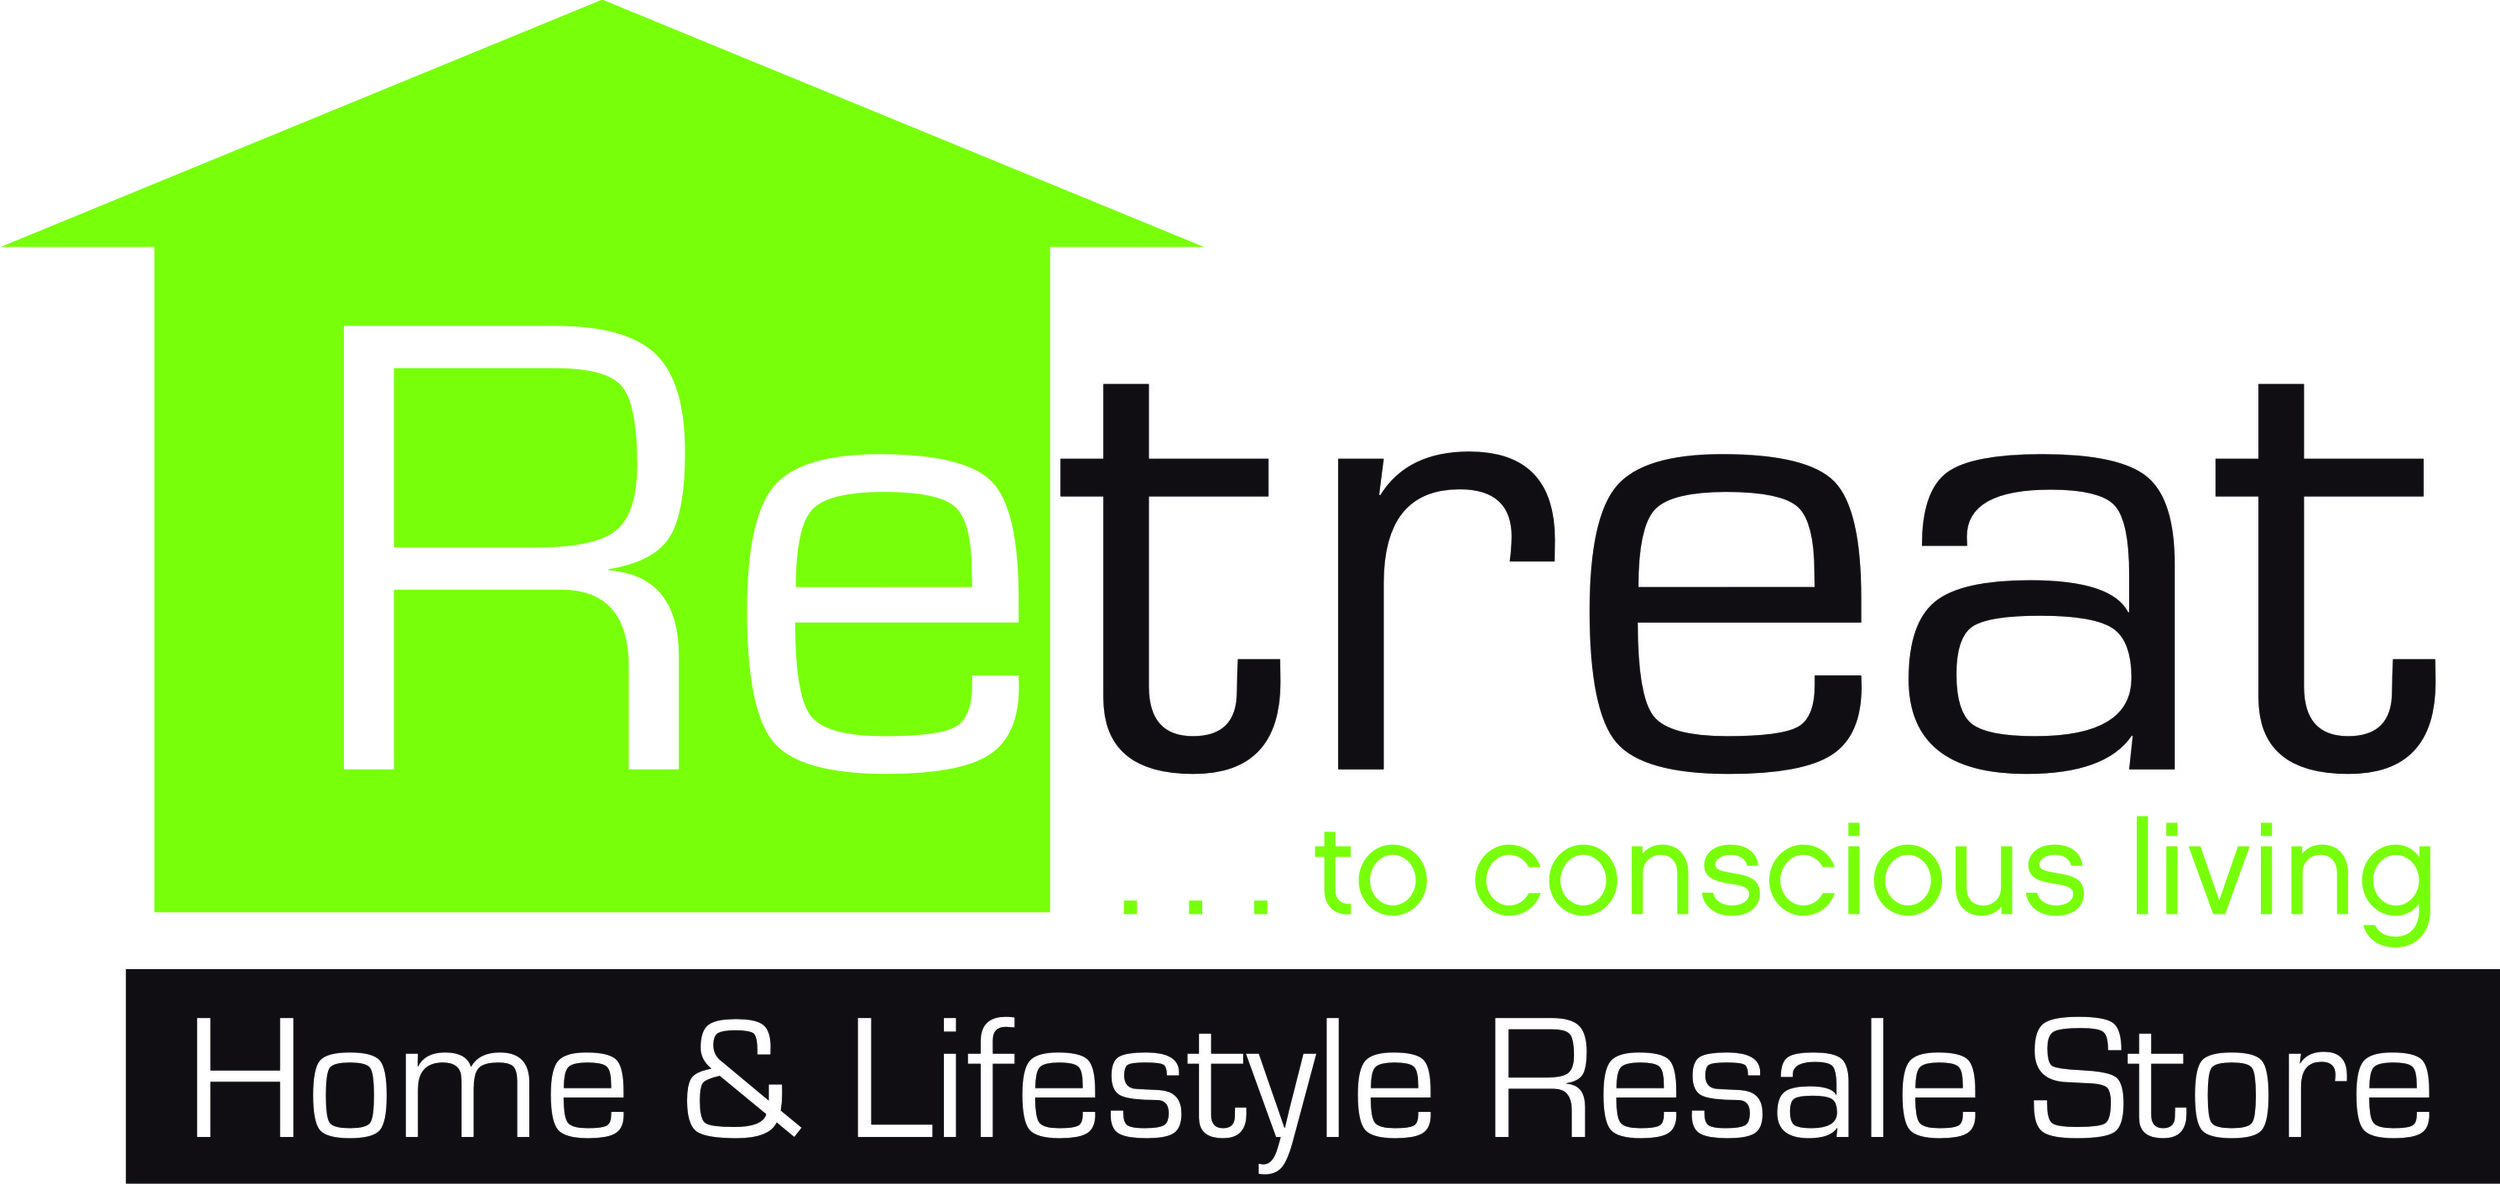 retreat-logo IS.jpg